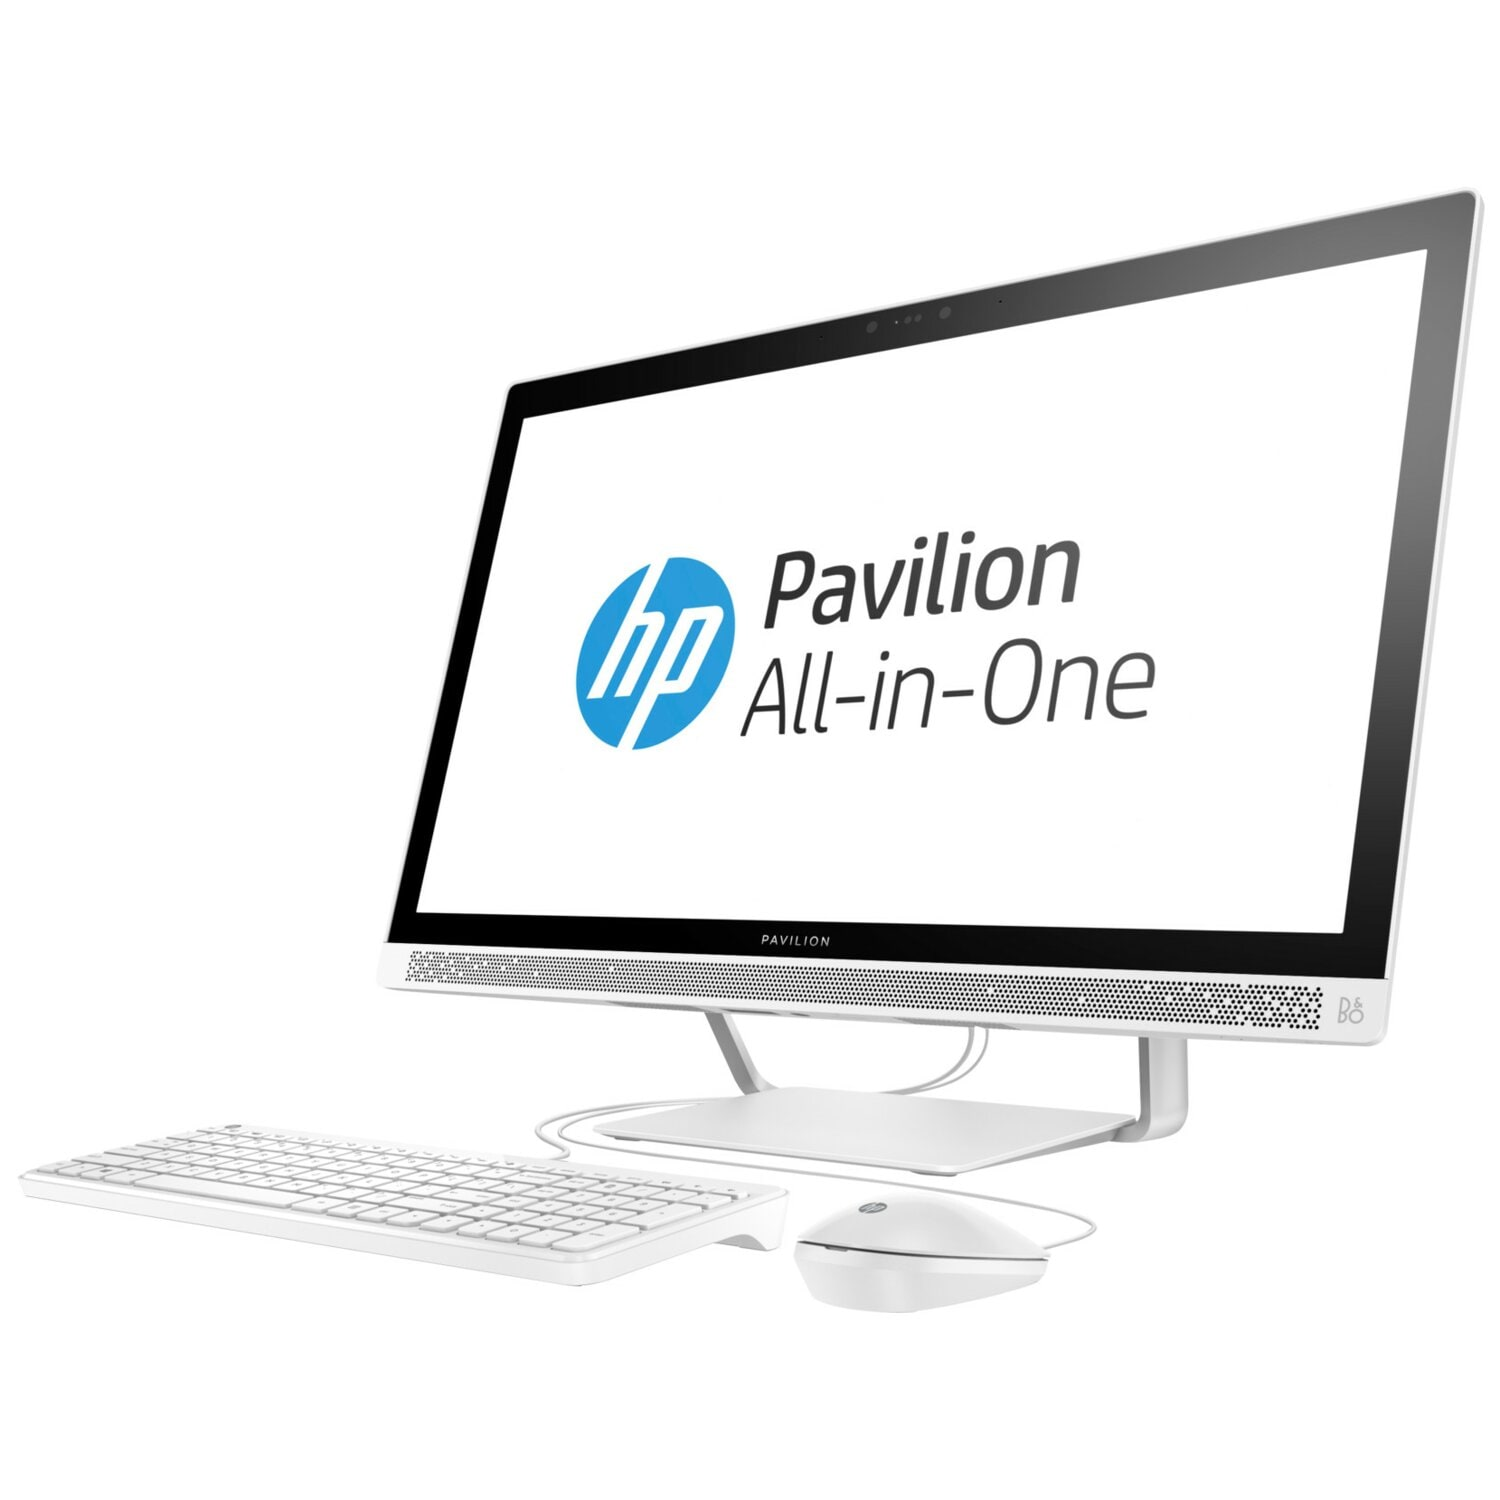 Komputer All-in-One HP Pavilion 27-a211nw i7-7700T/8GB/128GB SSD+1TB/W10